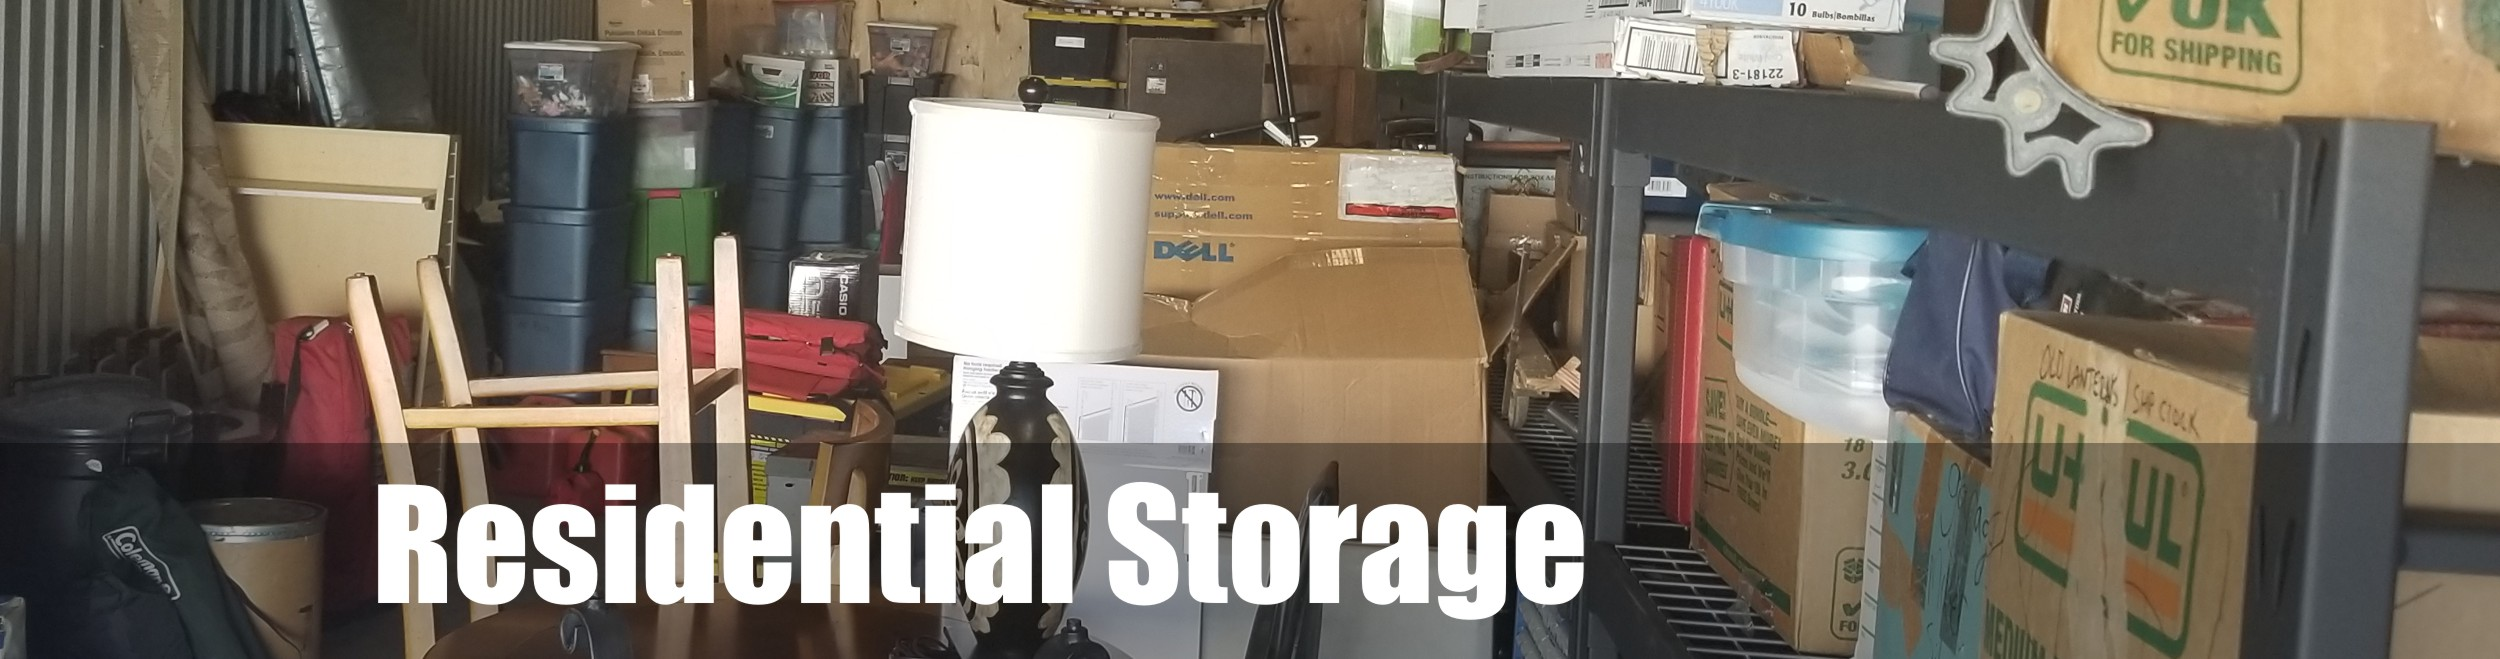 residential storage southern oregon